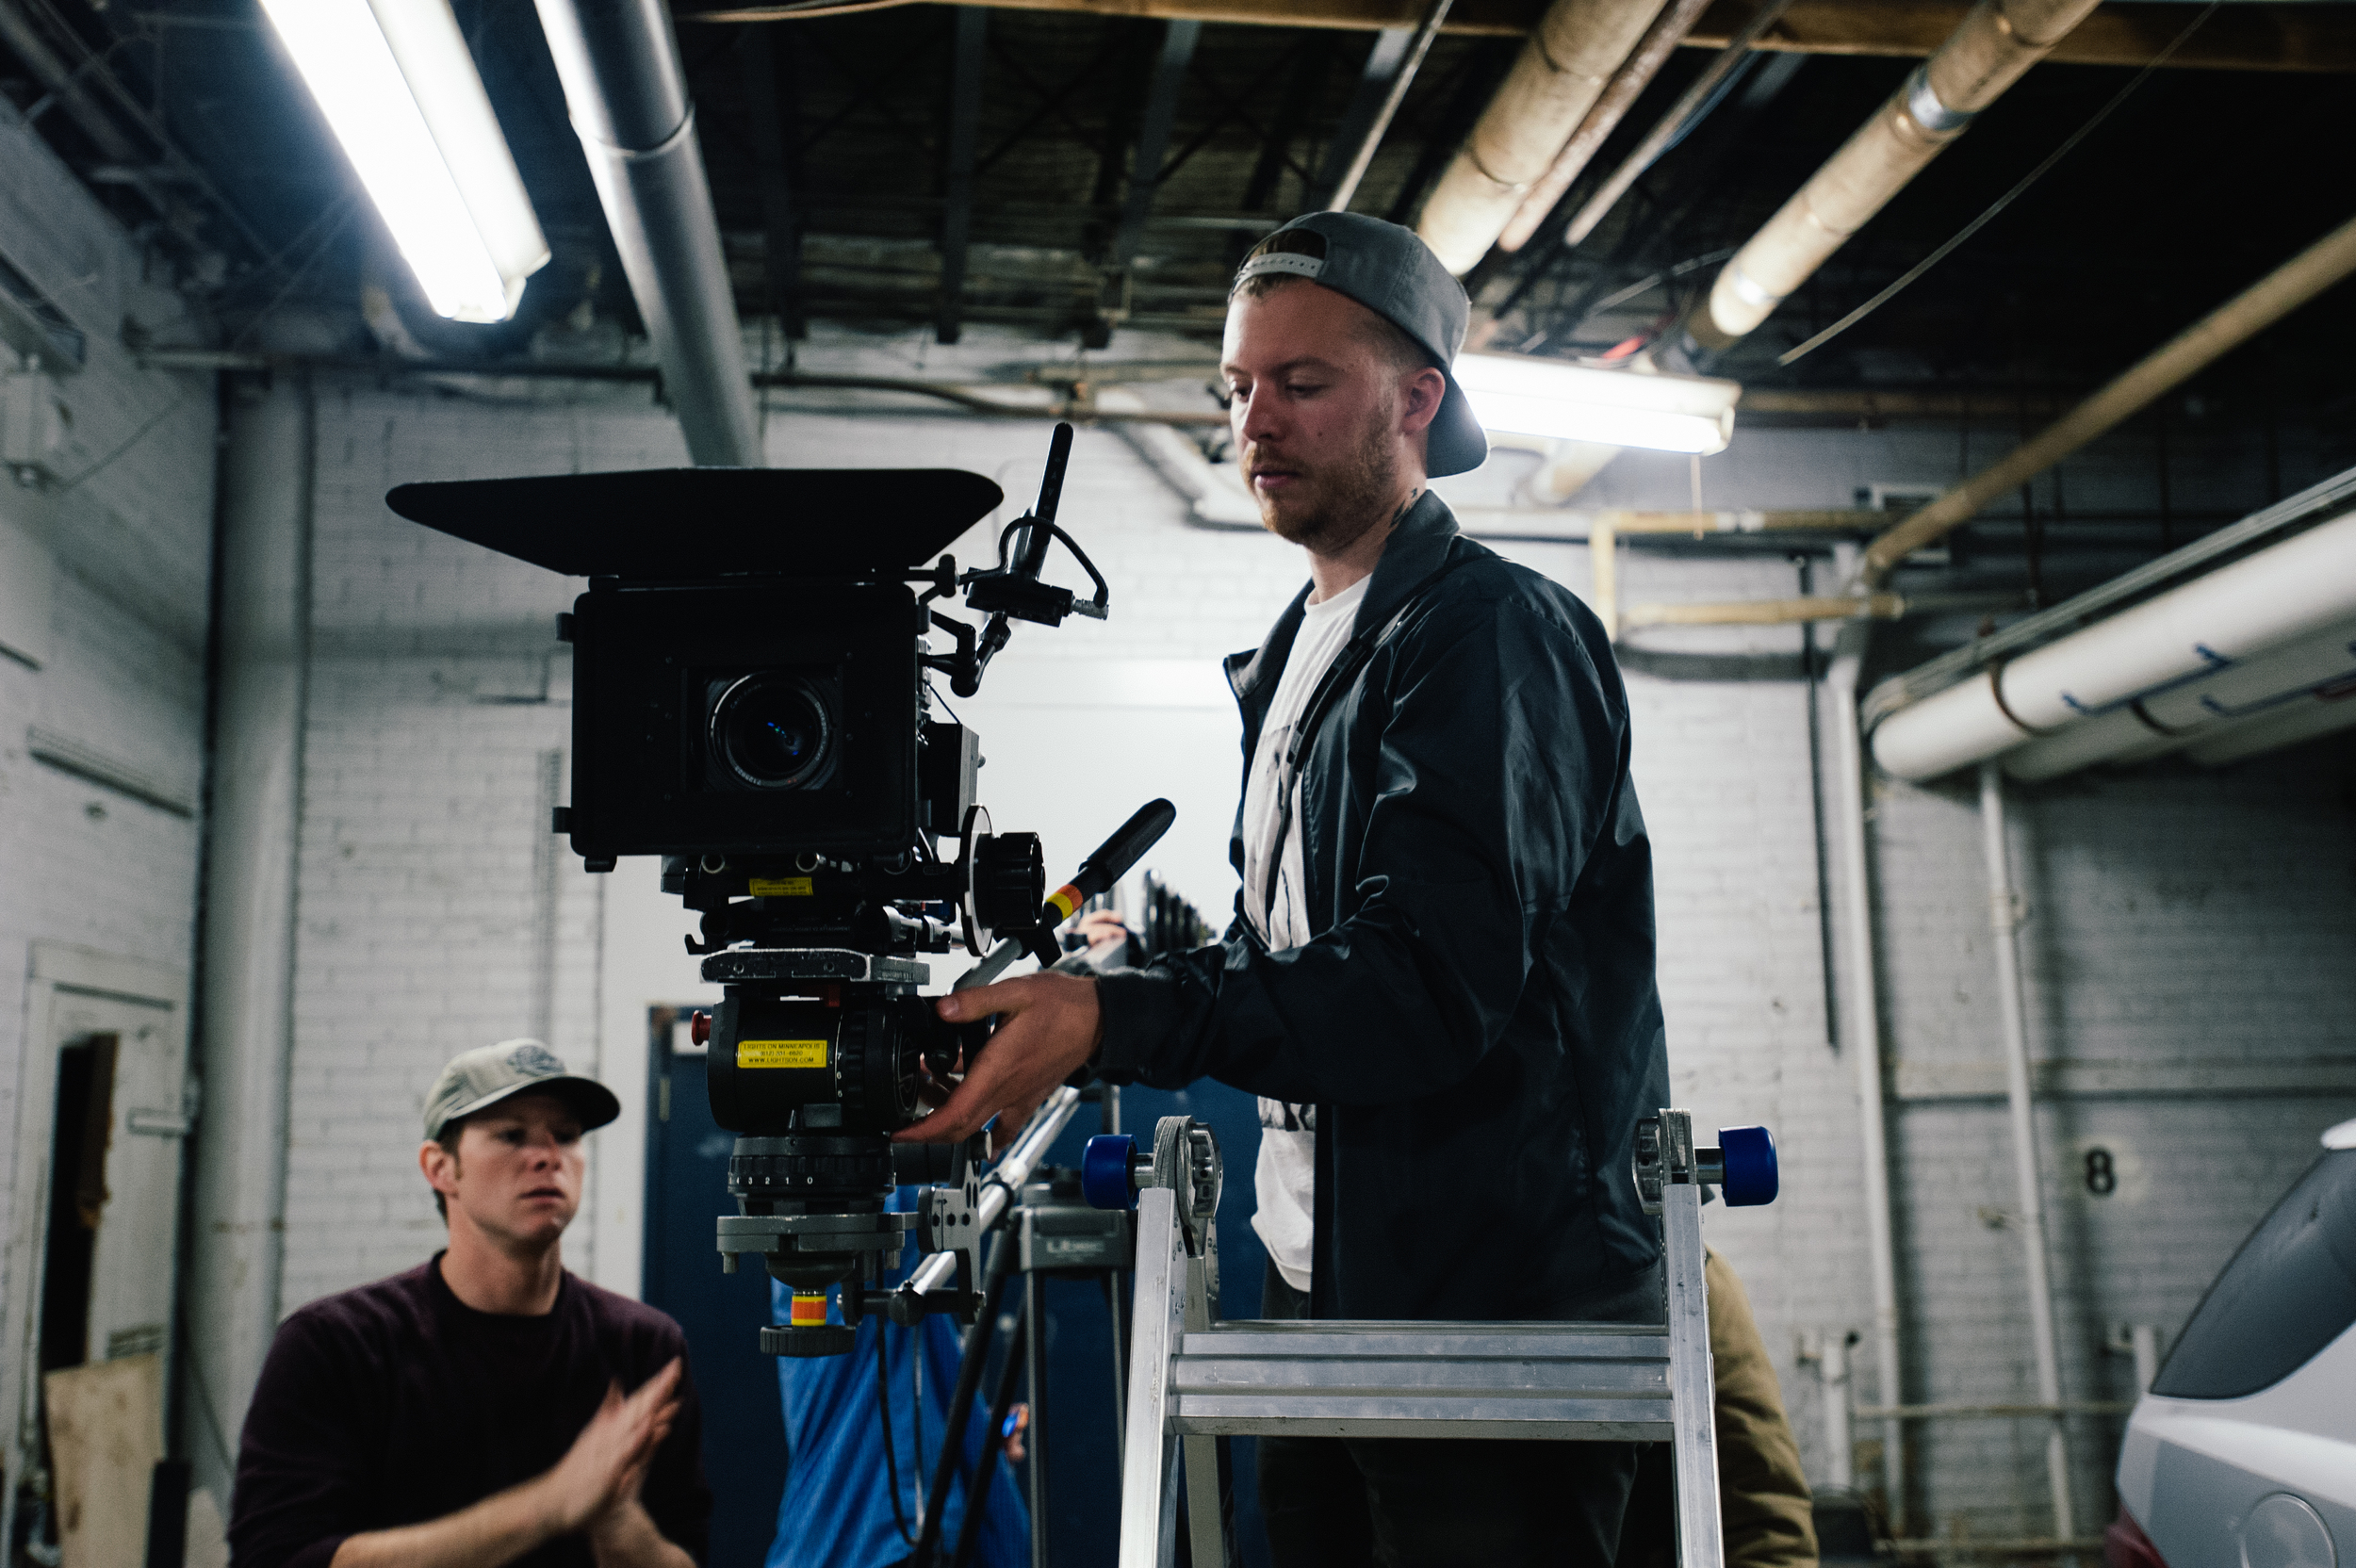 CInematographer Kevin Horn uses a ladder to get his camera into position